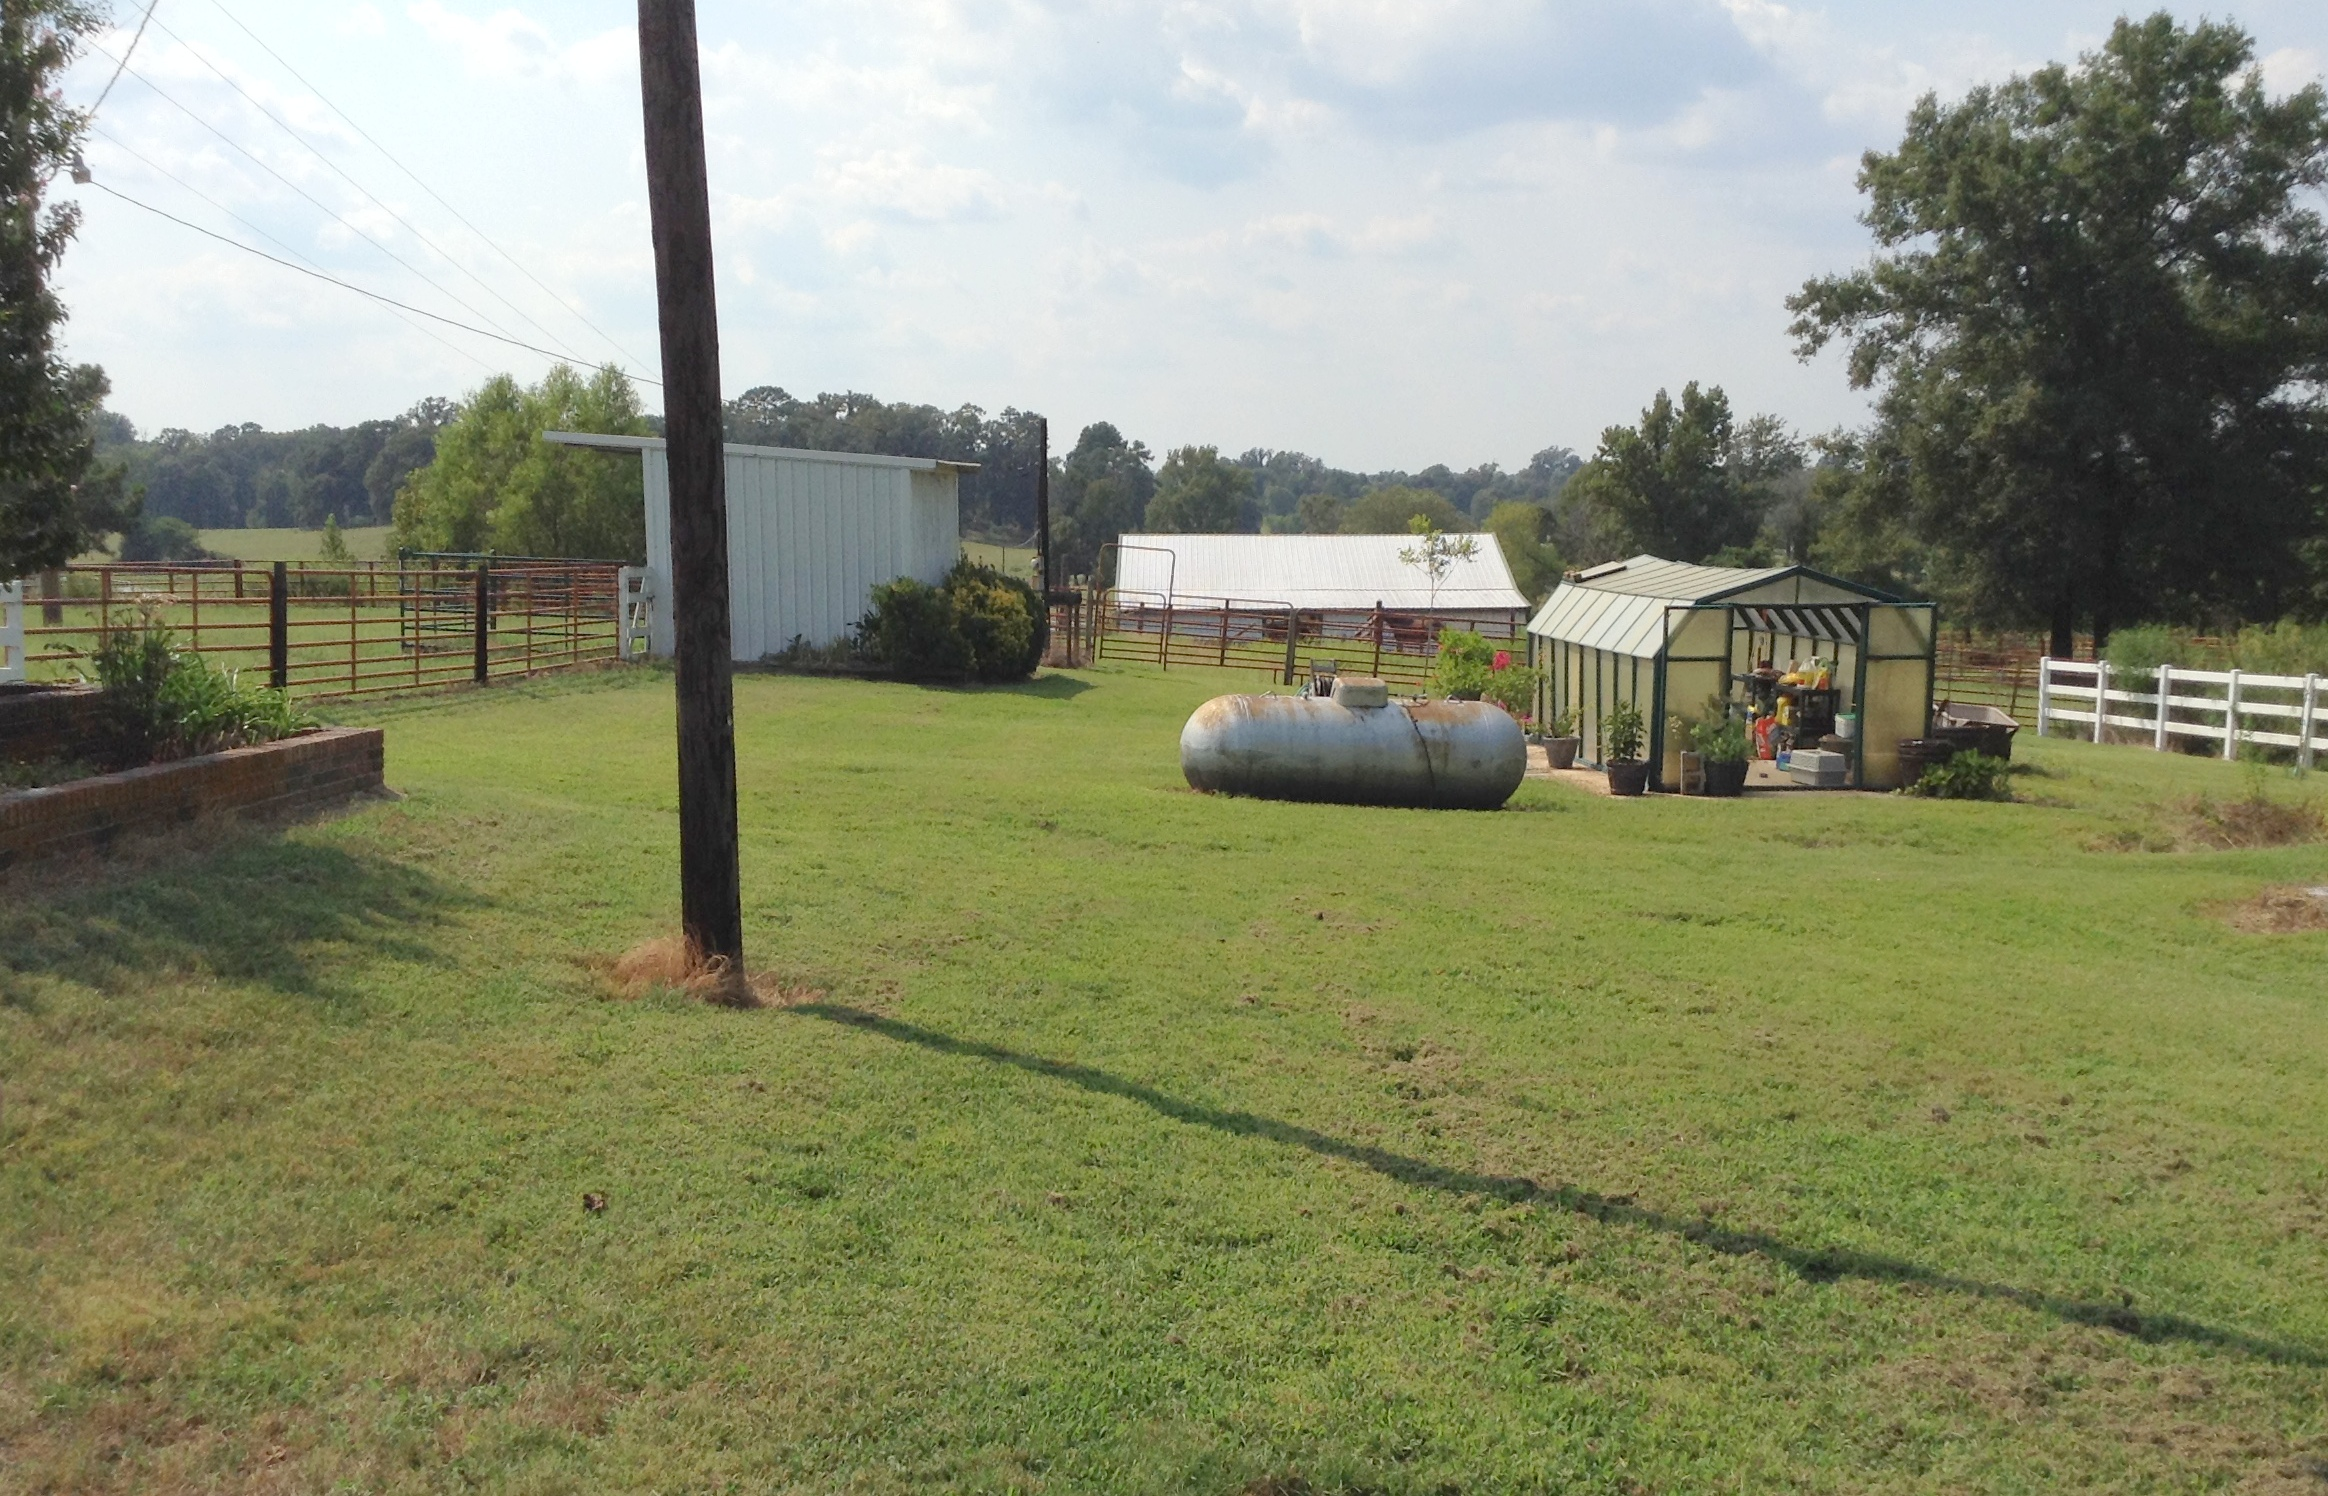 East texas ranch apx horse or cattle ready for Build on your lot east texas